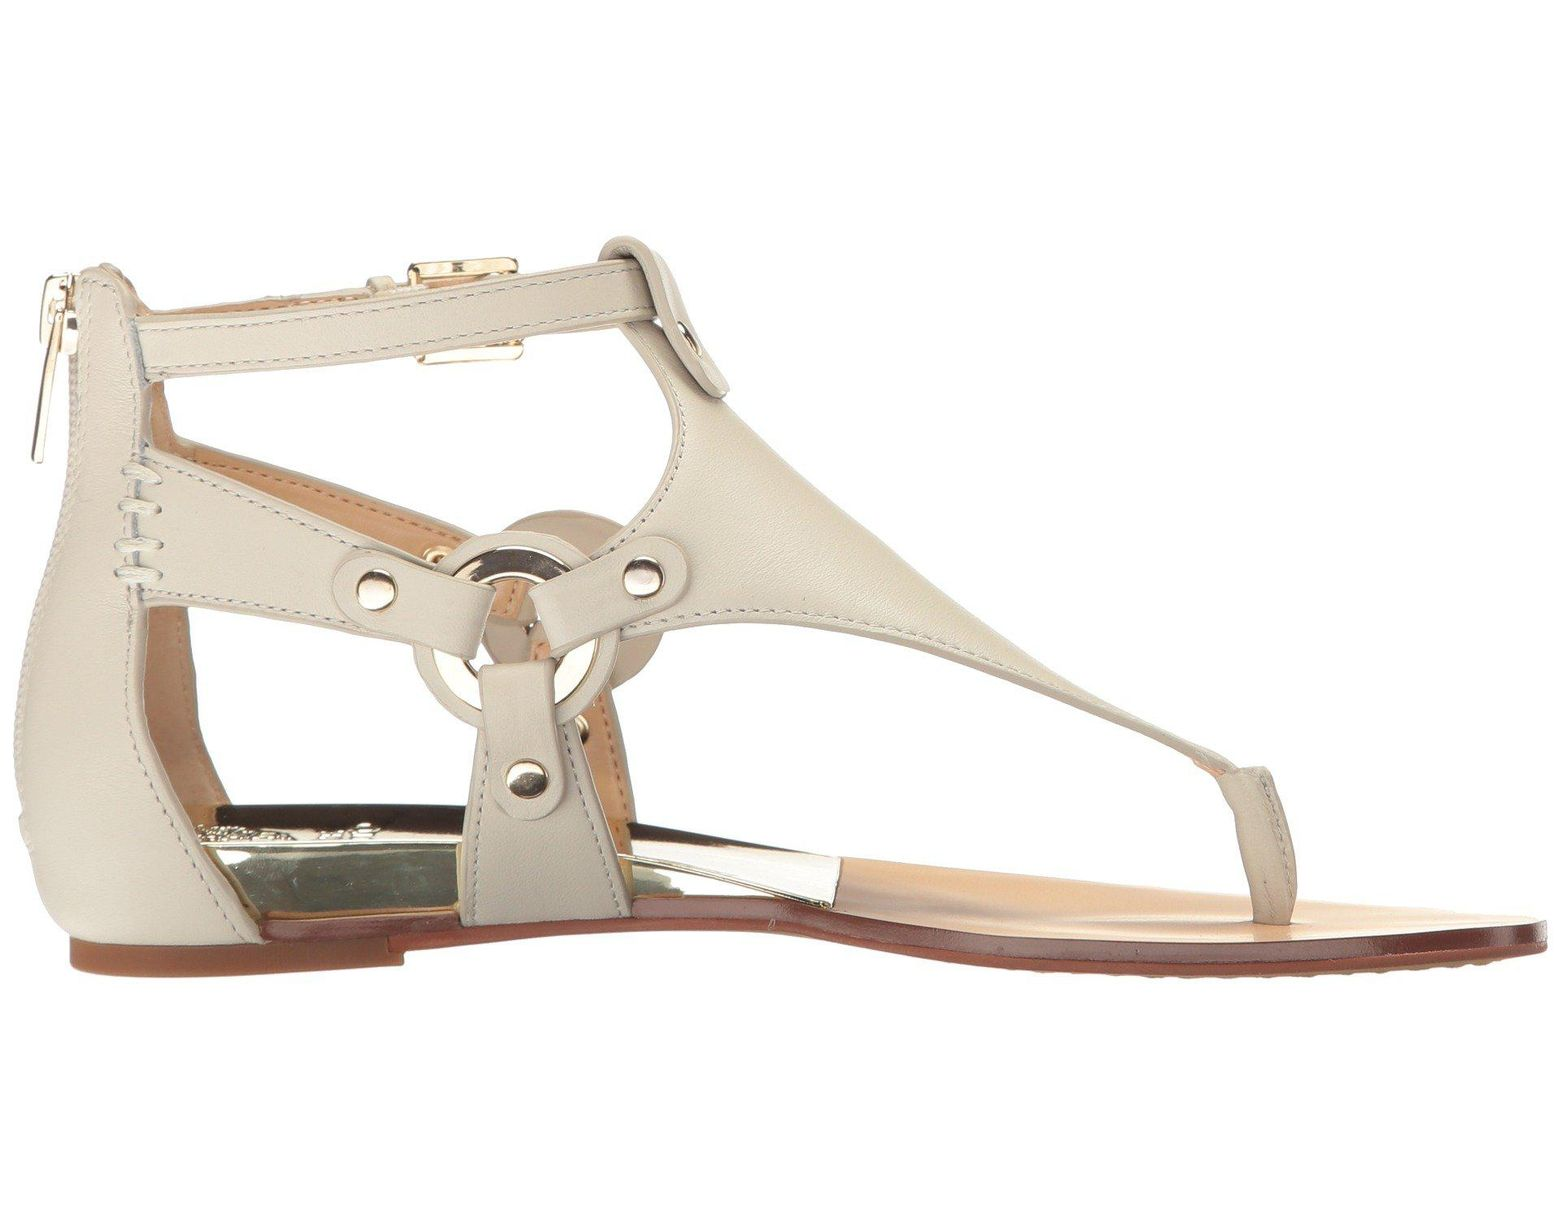 c519cf37bd54 Lyst - Vince Camuto Averie Caged Thong Sandals in White - Save 49%